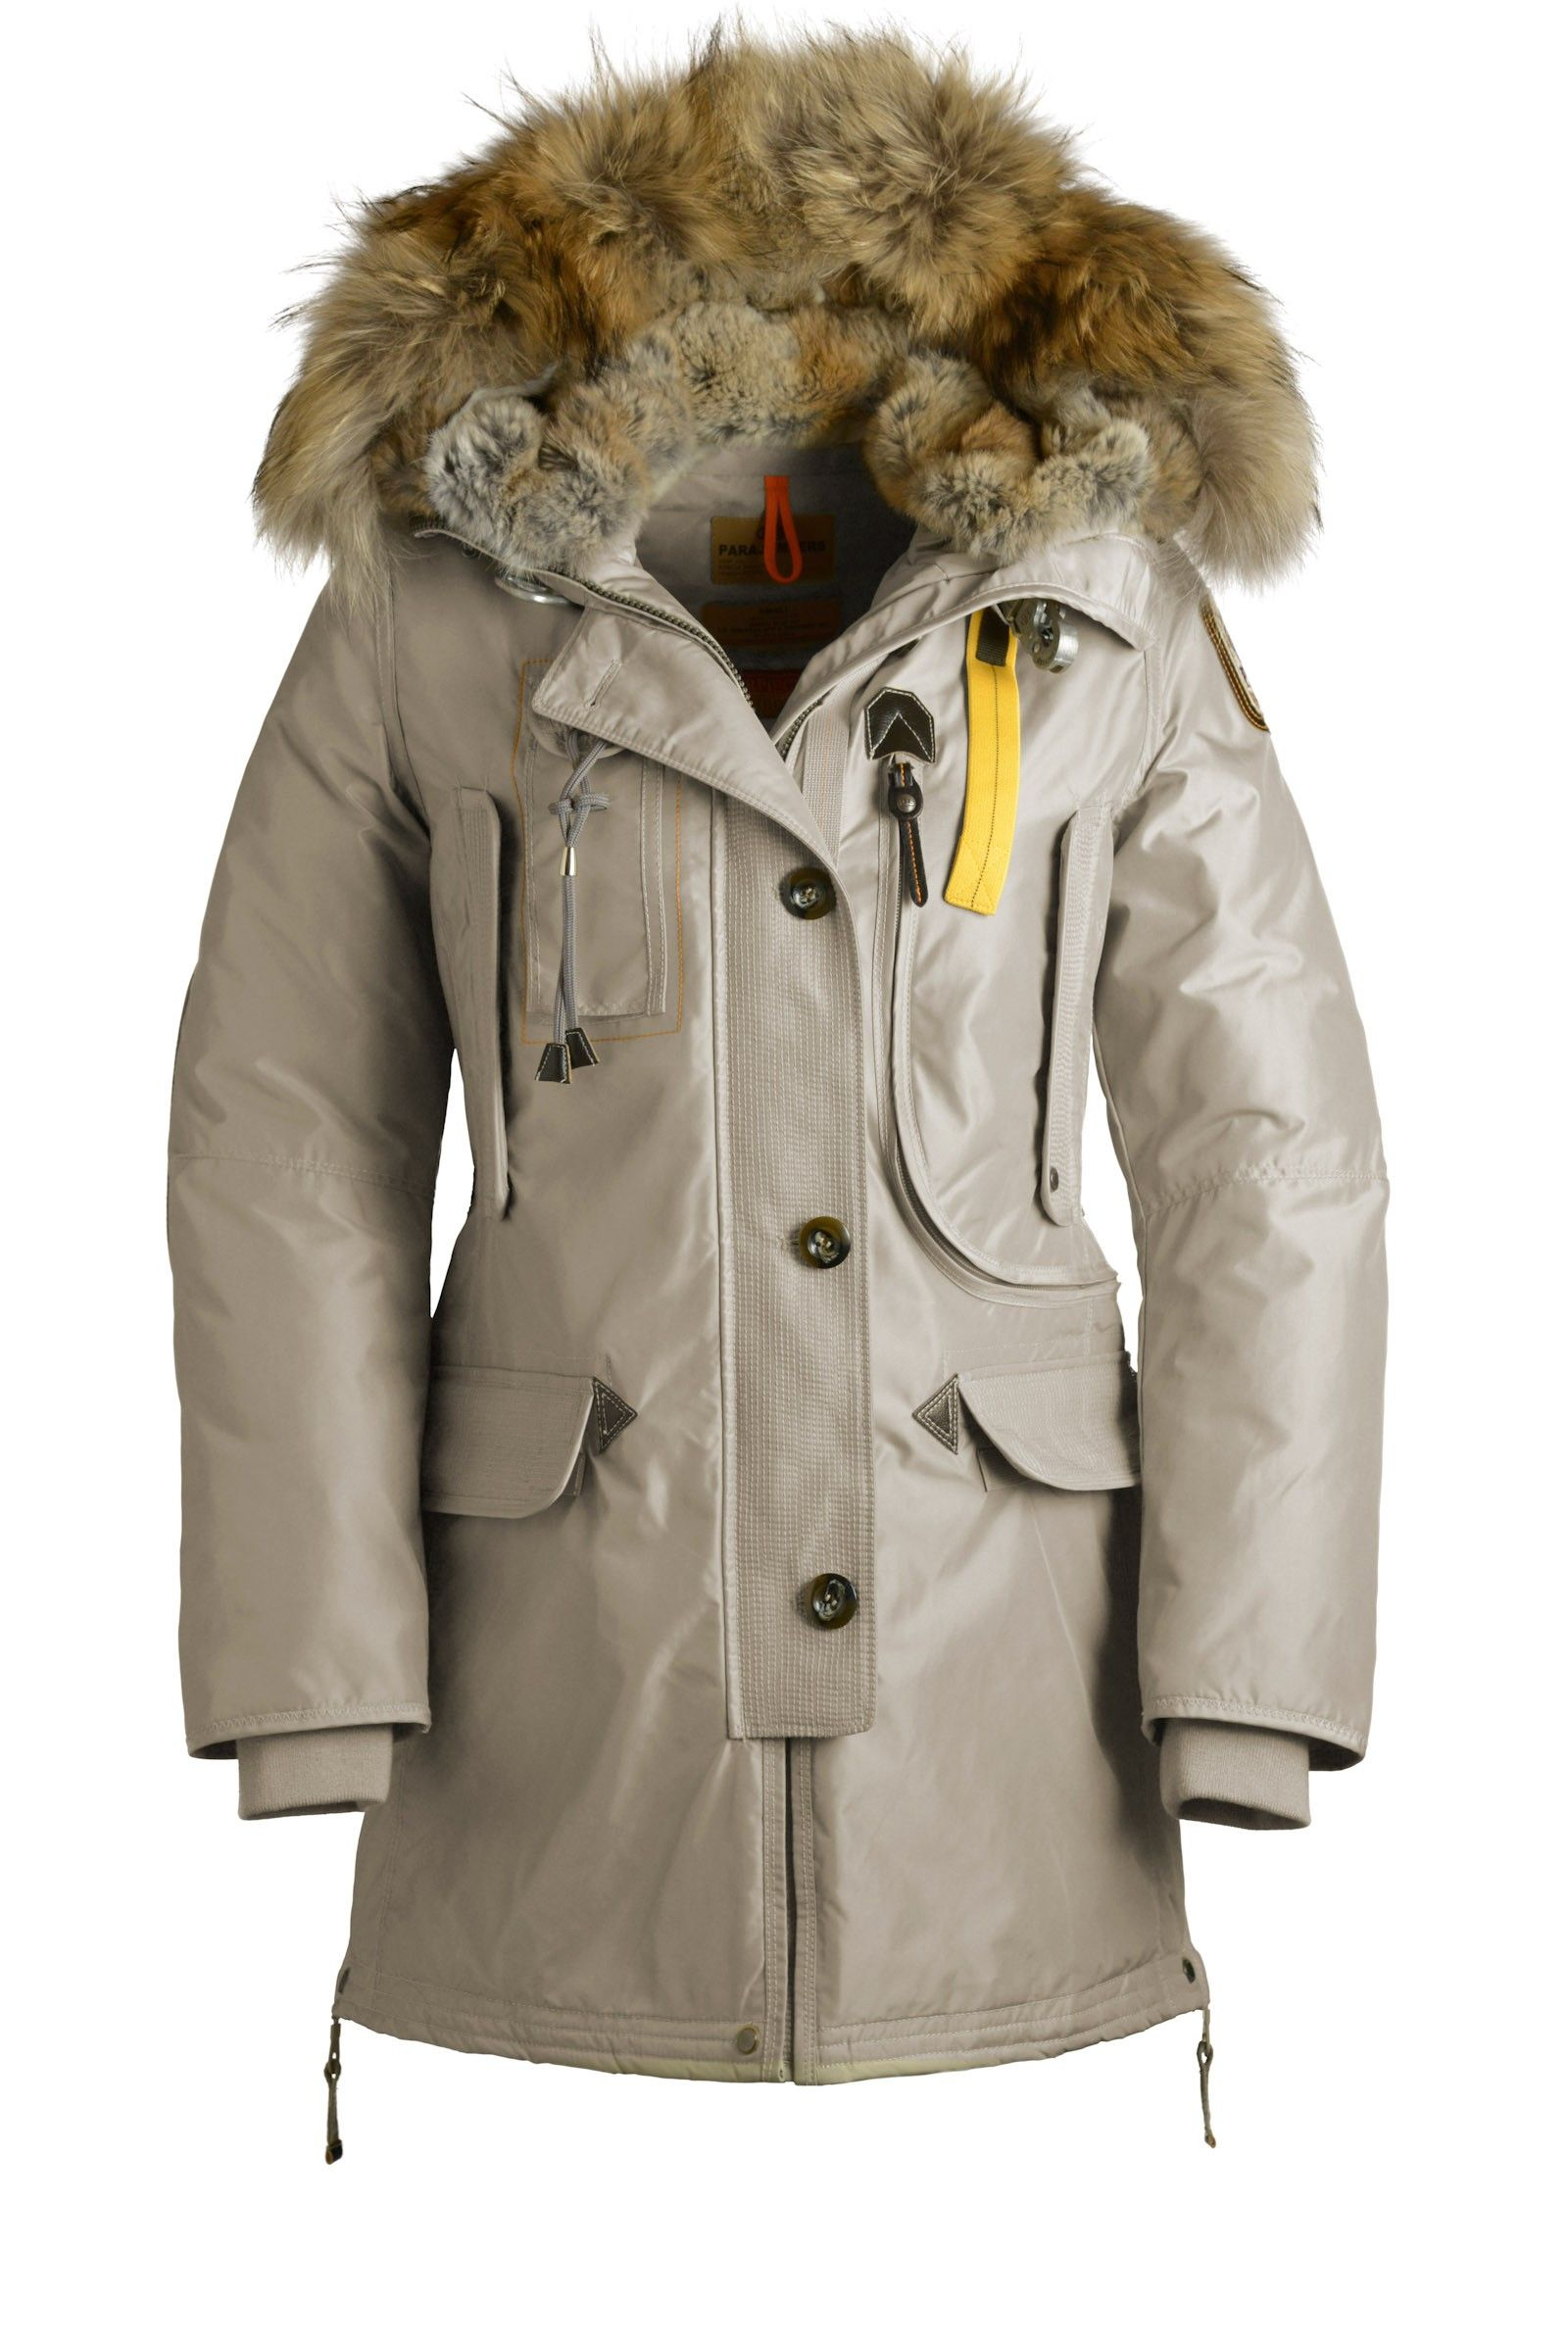 Still really want one; Parajumpers Kodiak